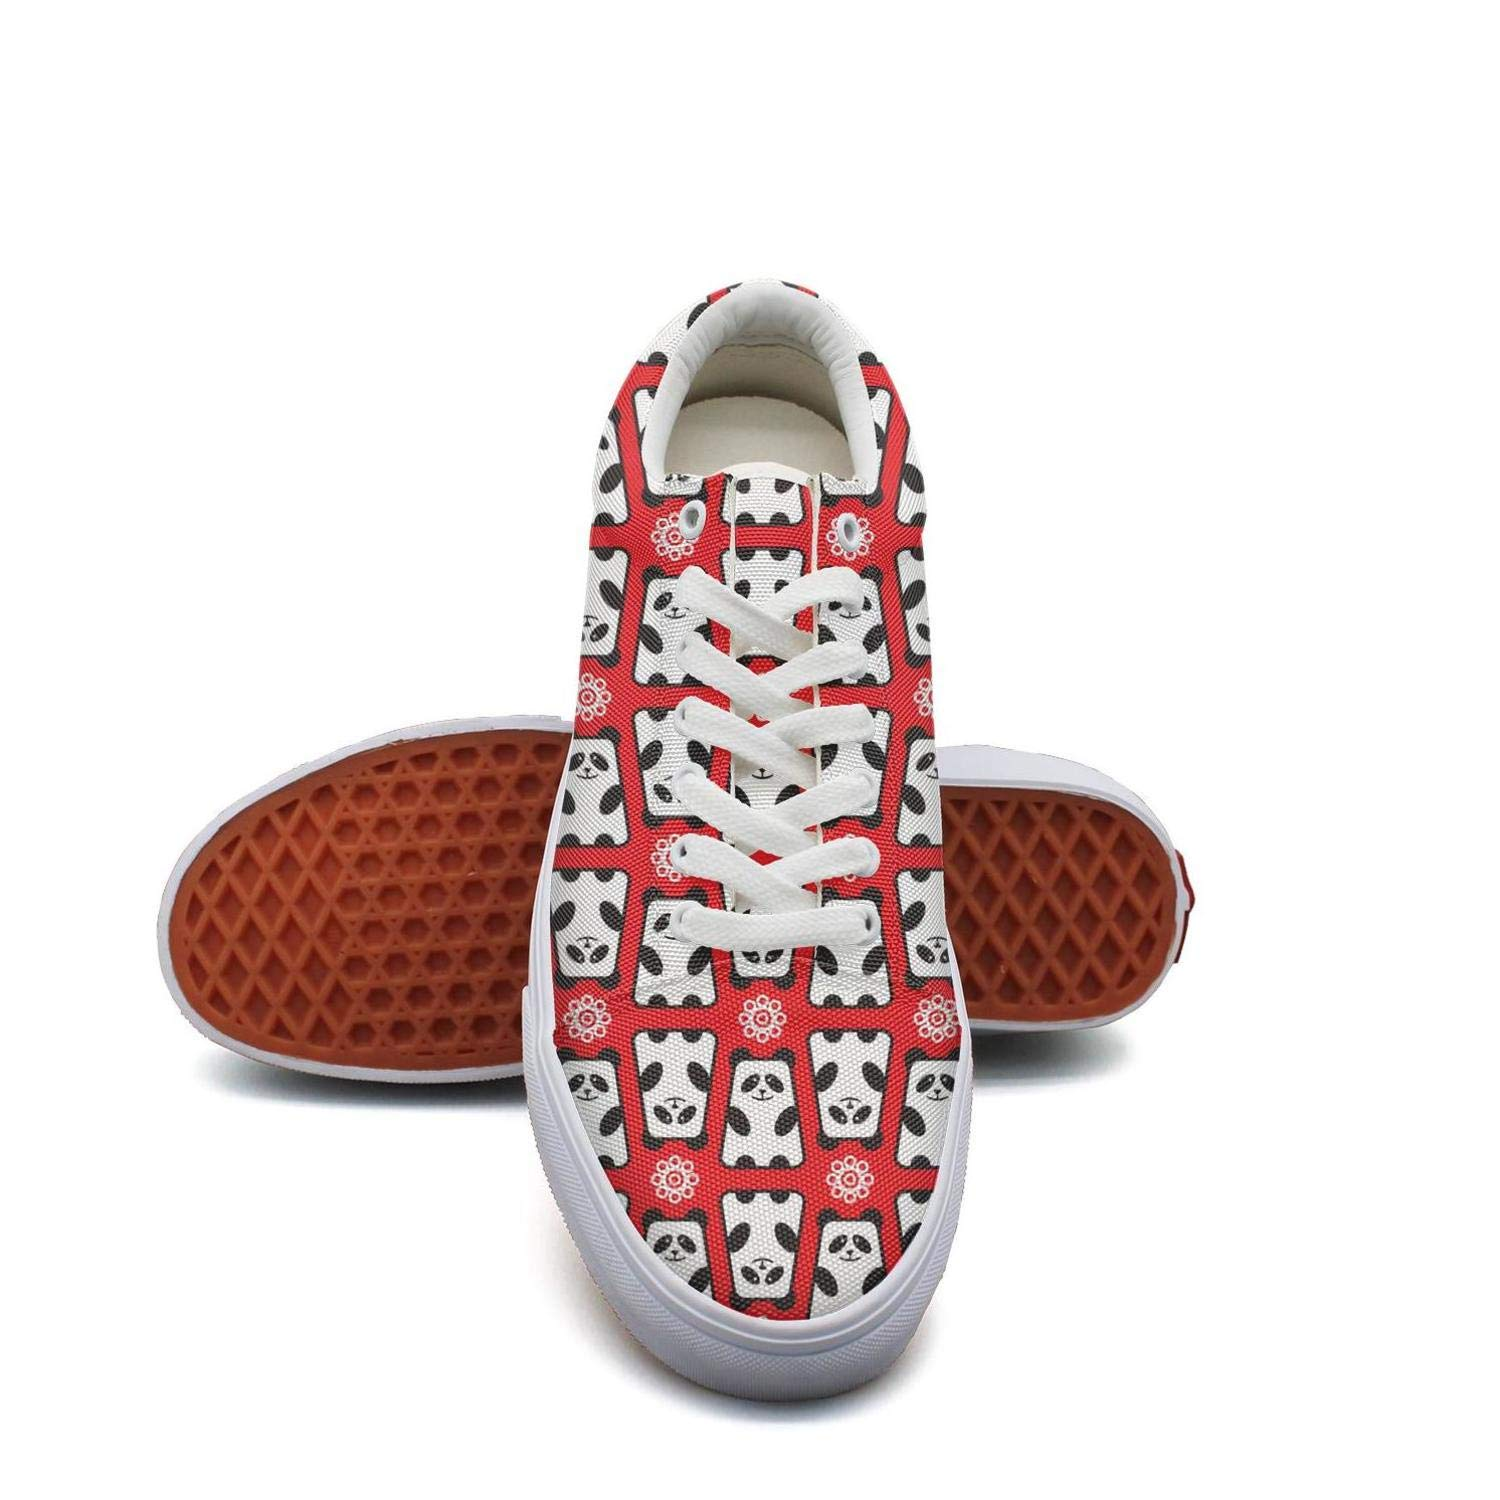 KJGDFS Red Funny Giant Panda Leather Flat Shoes Limited Edition Slip on for Man